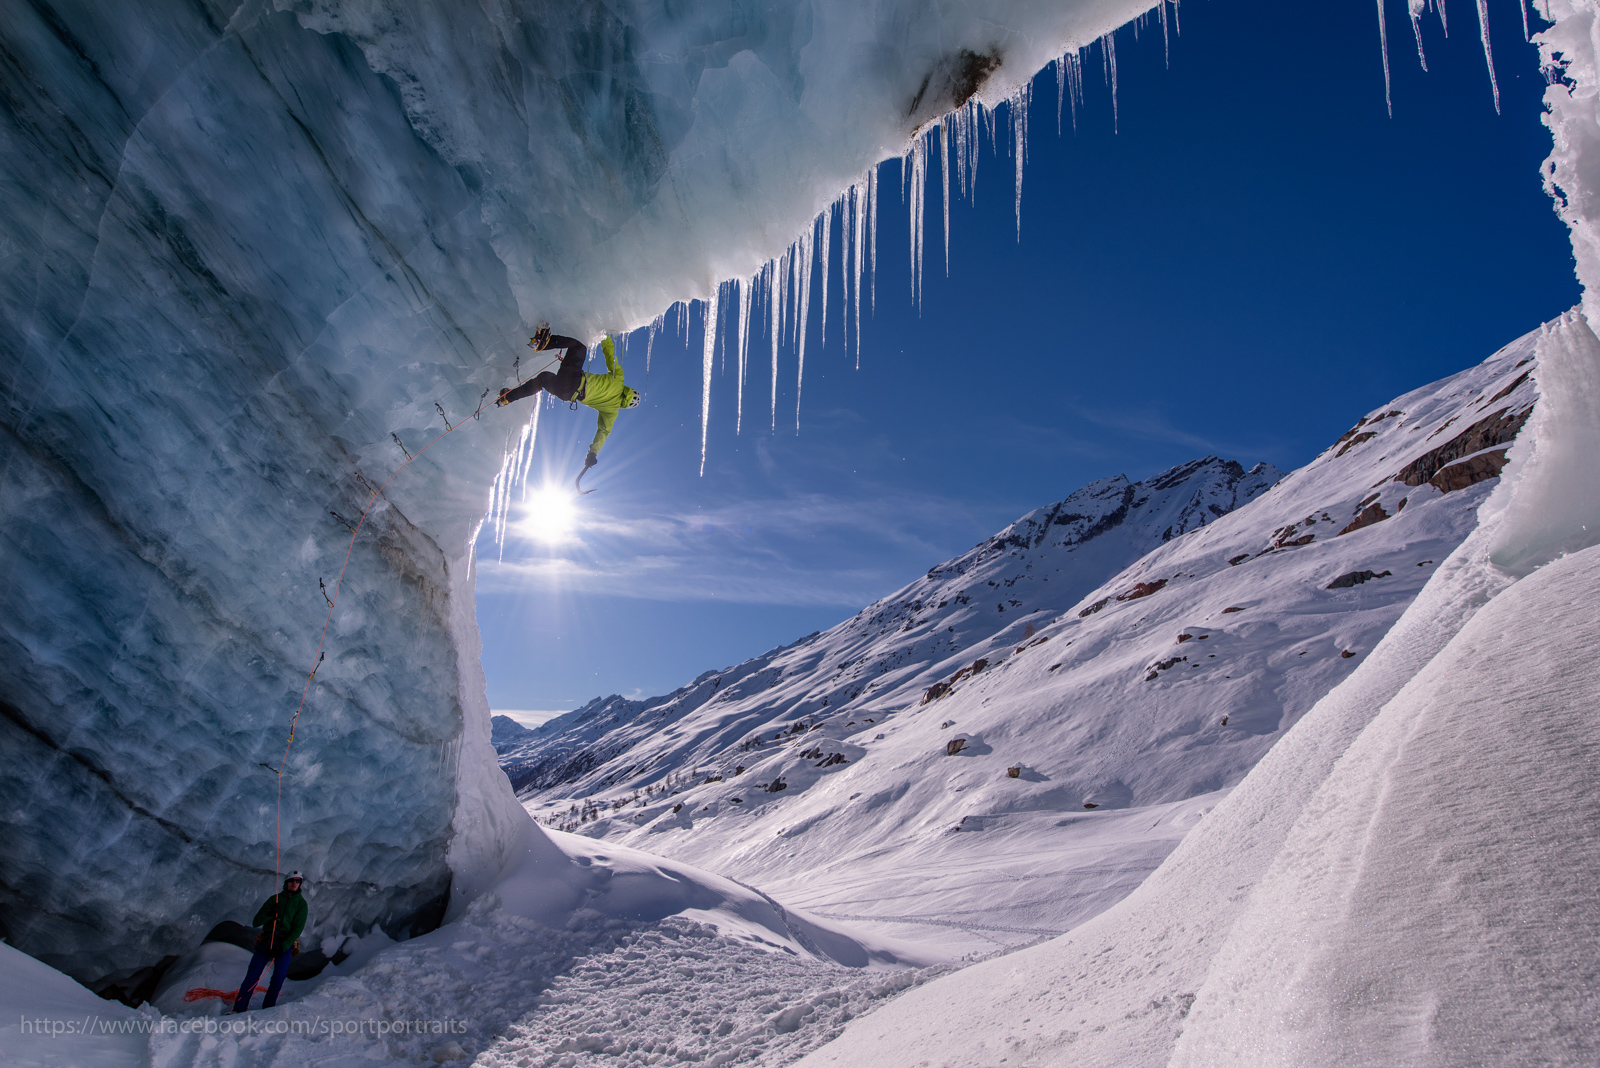 Eisklettern an einem Gletscher in den Alpen, Wallis, Schweiz - Iceclimbing on a glacier in the Swiss alps